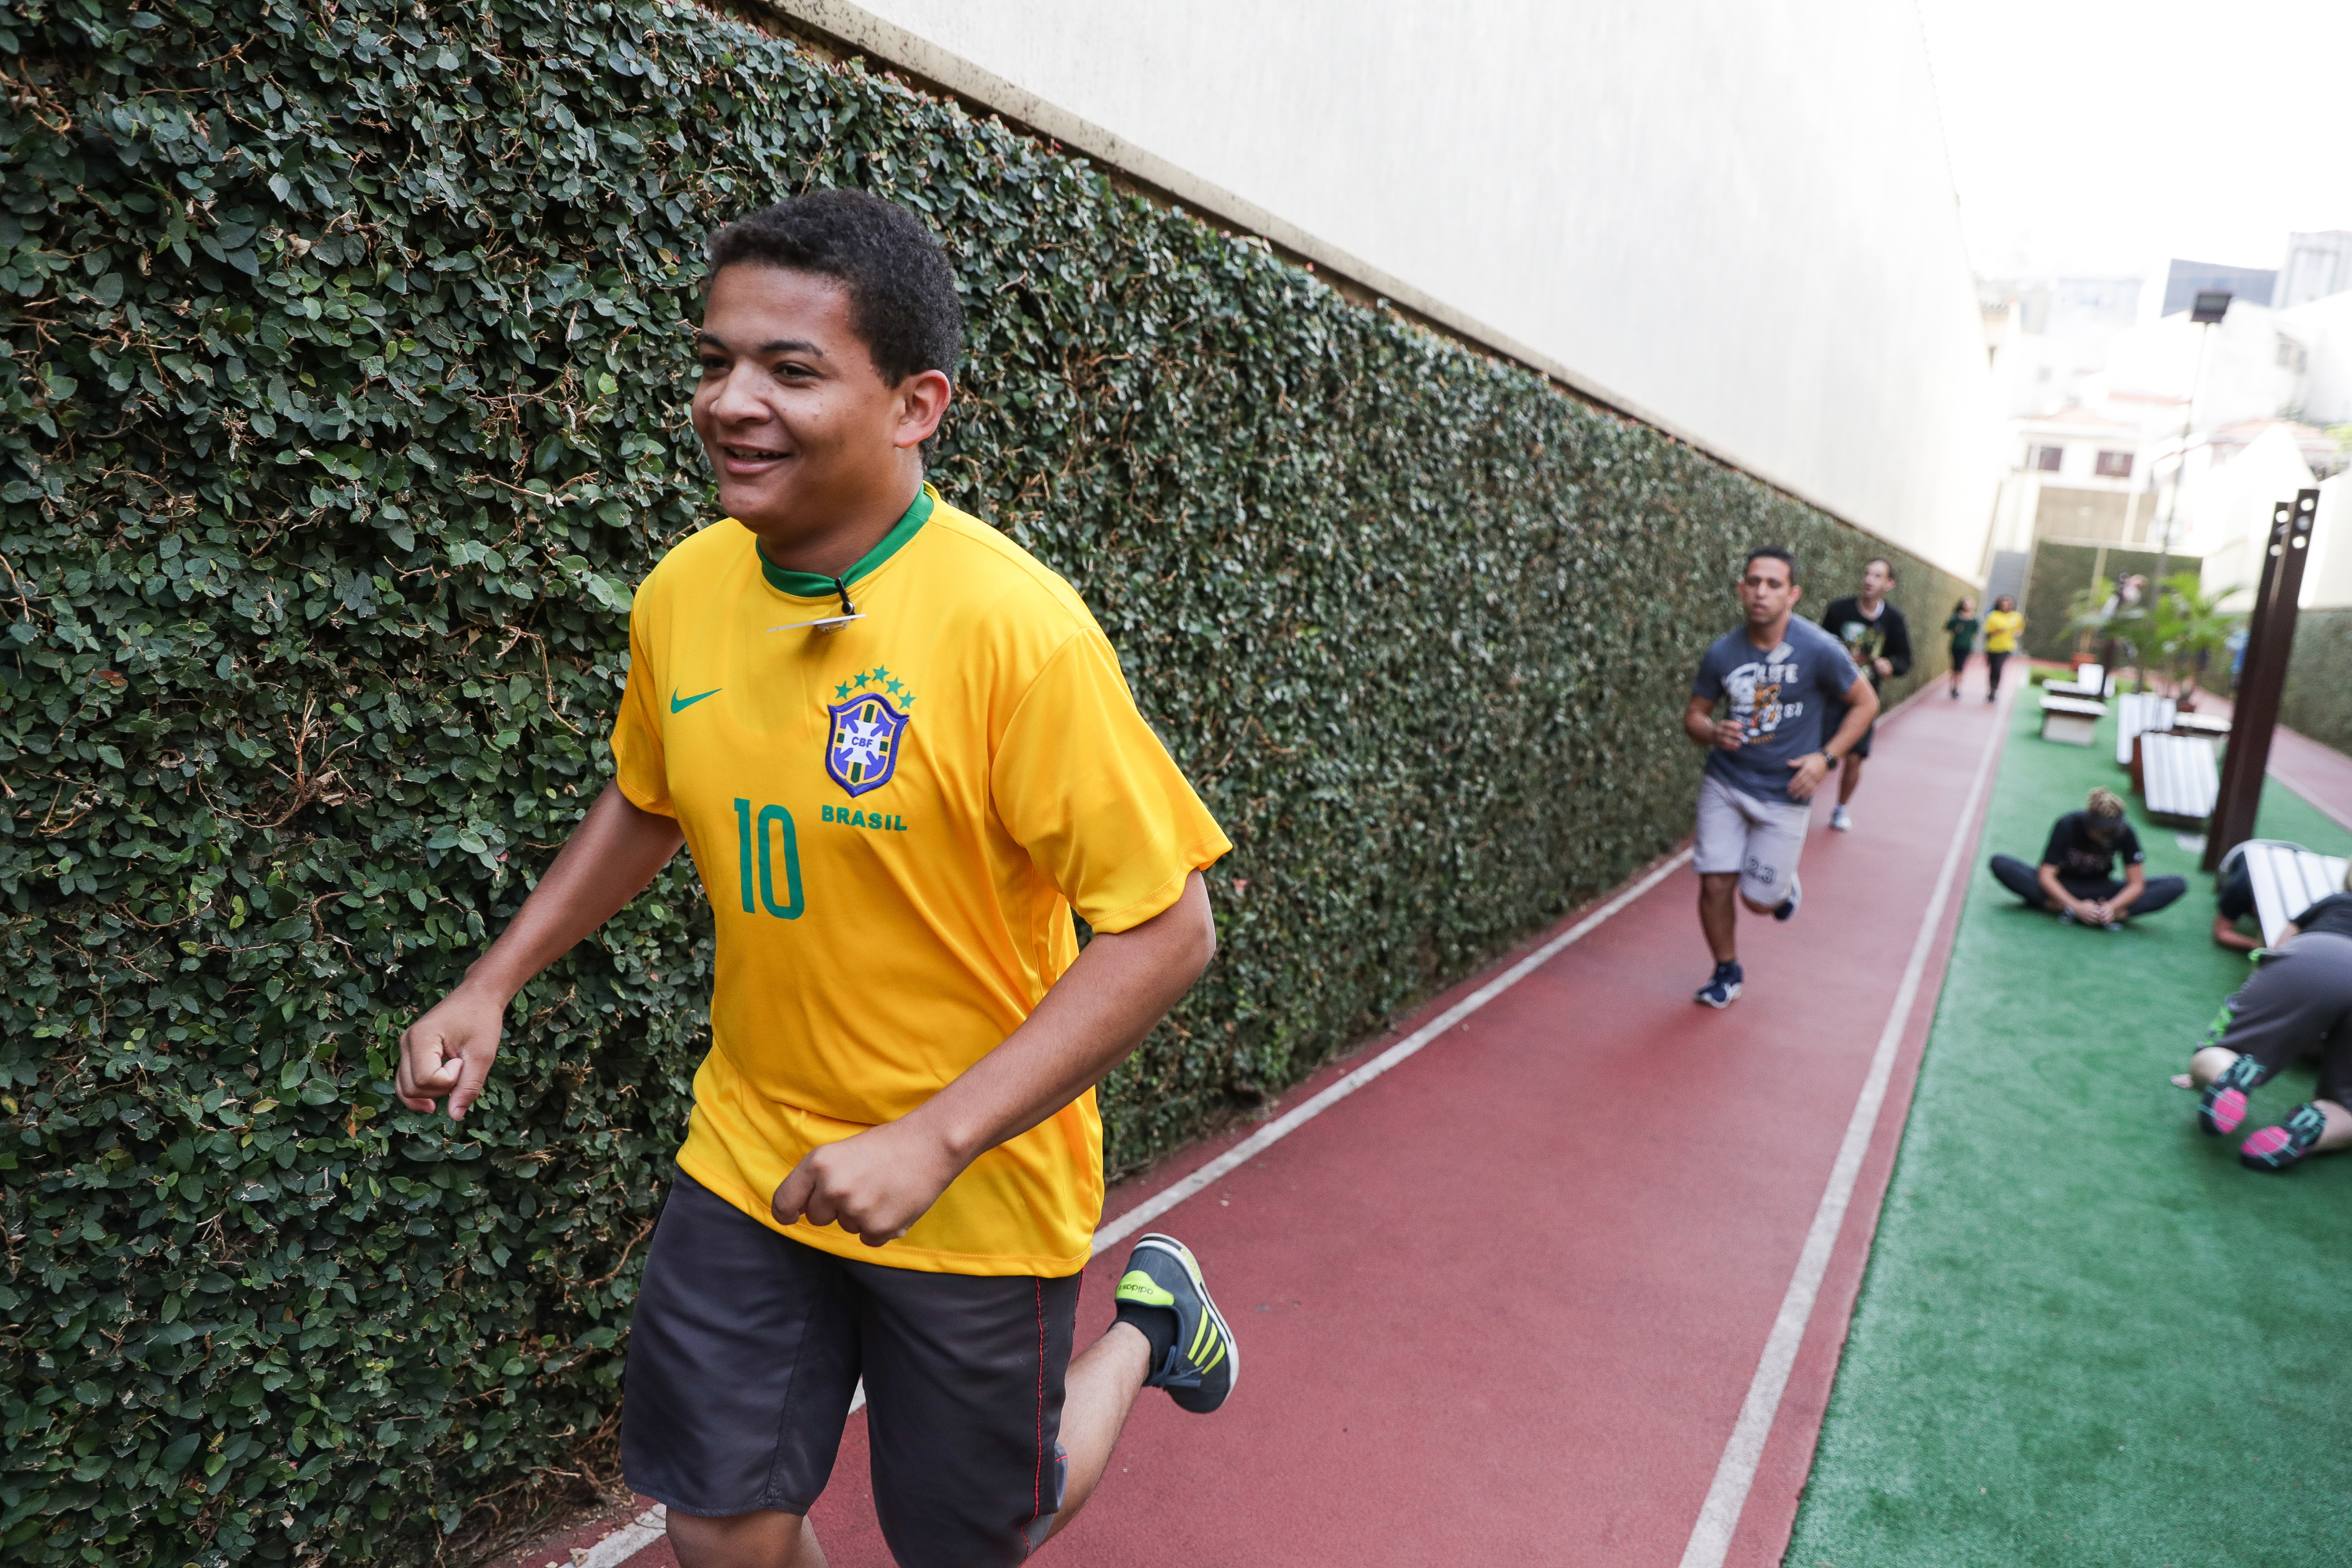 Elder Carlos Bastos, 20, of Rio de Janiero, runs on a track during physical activity at the Brazil Missionary Training Center in Sao Paulo on Thursday, May 24, 2018.